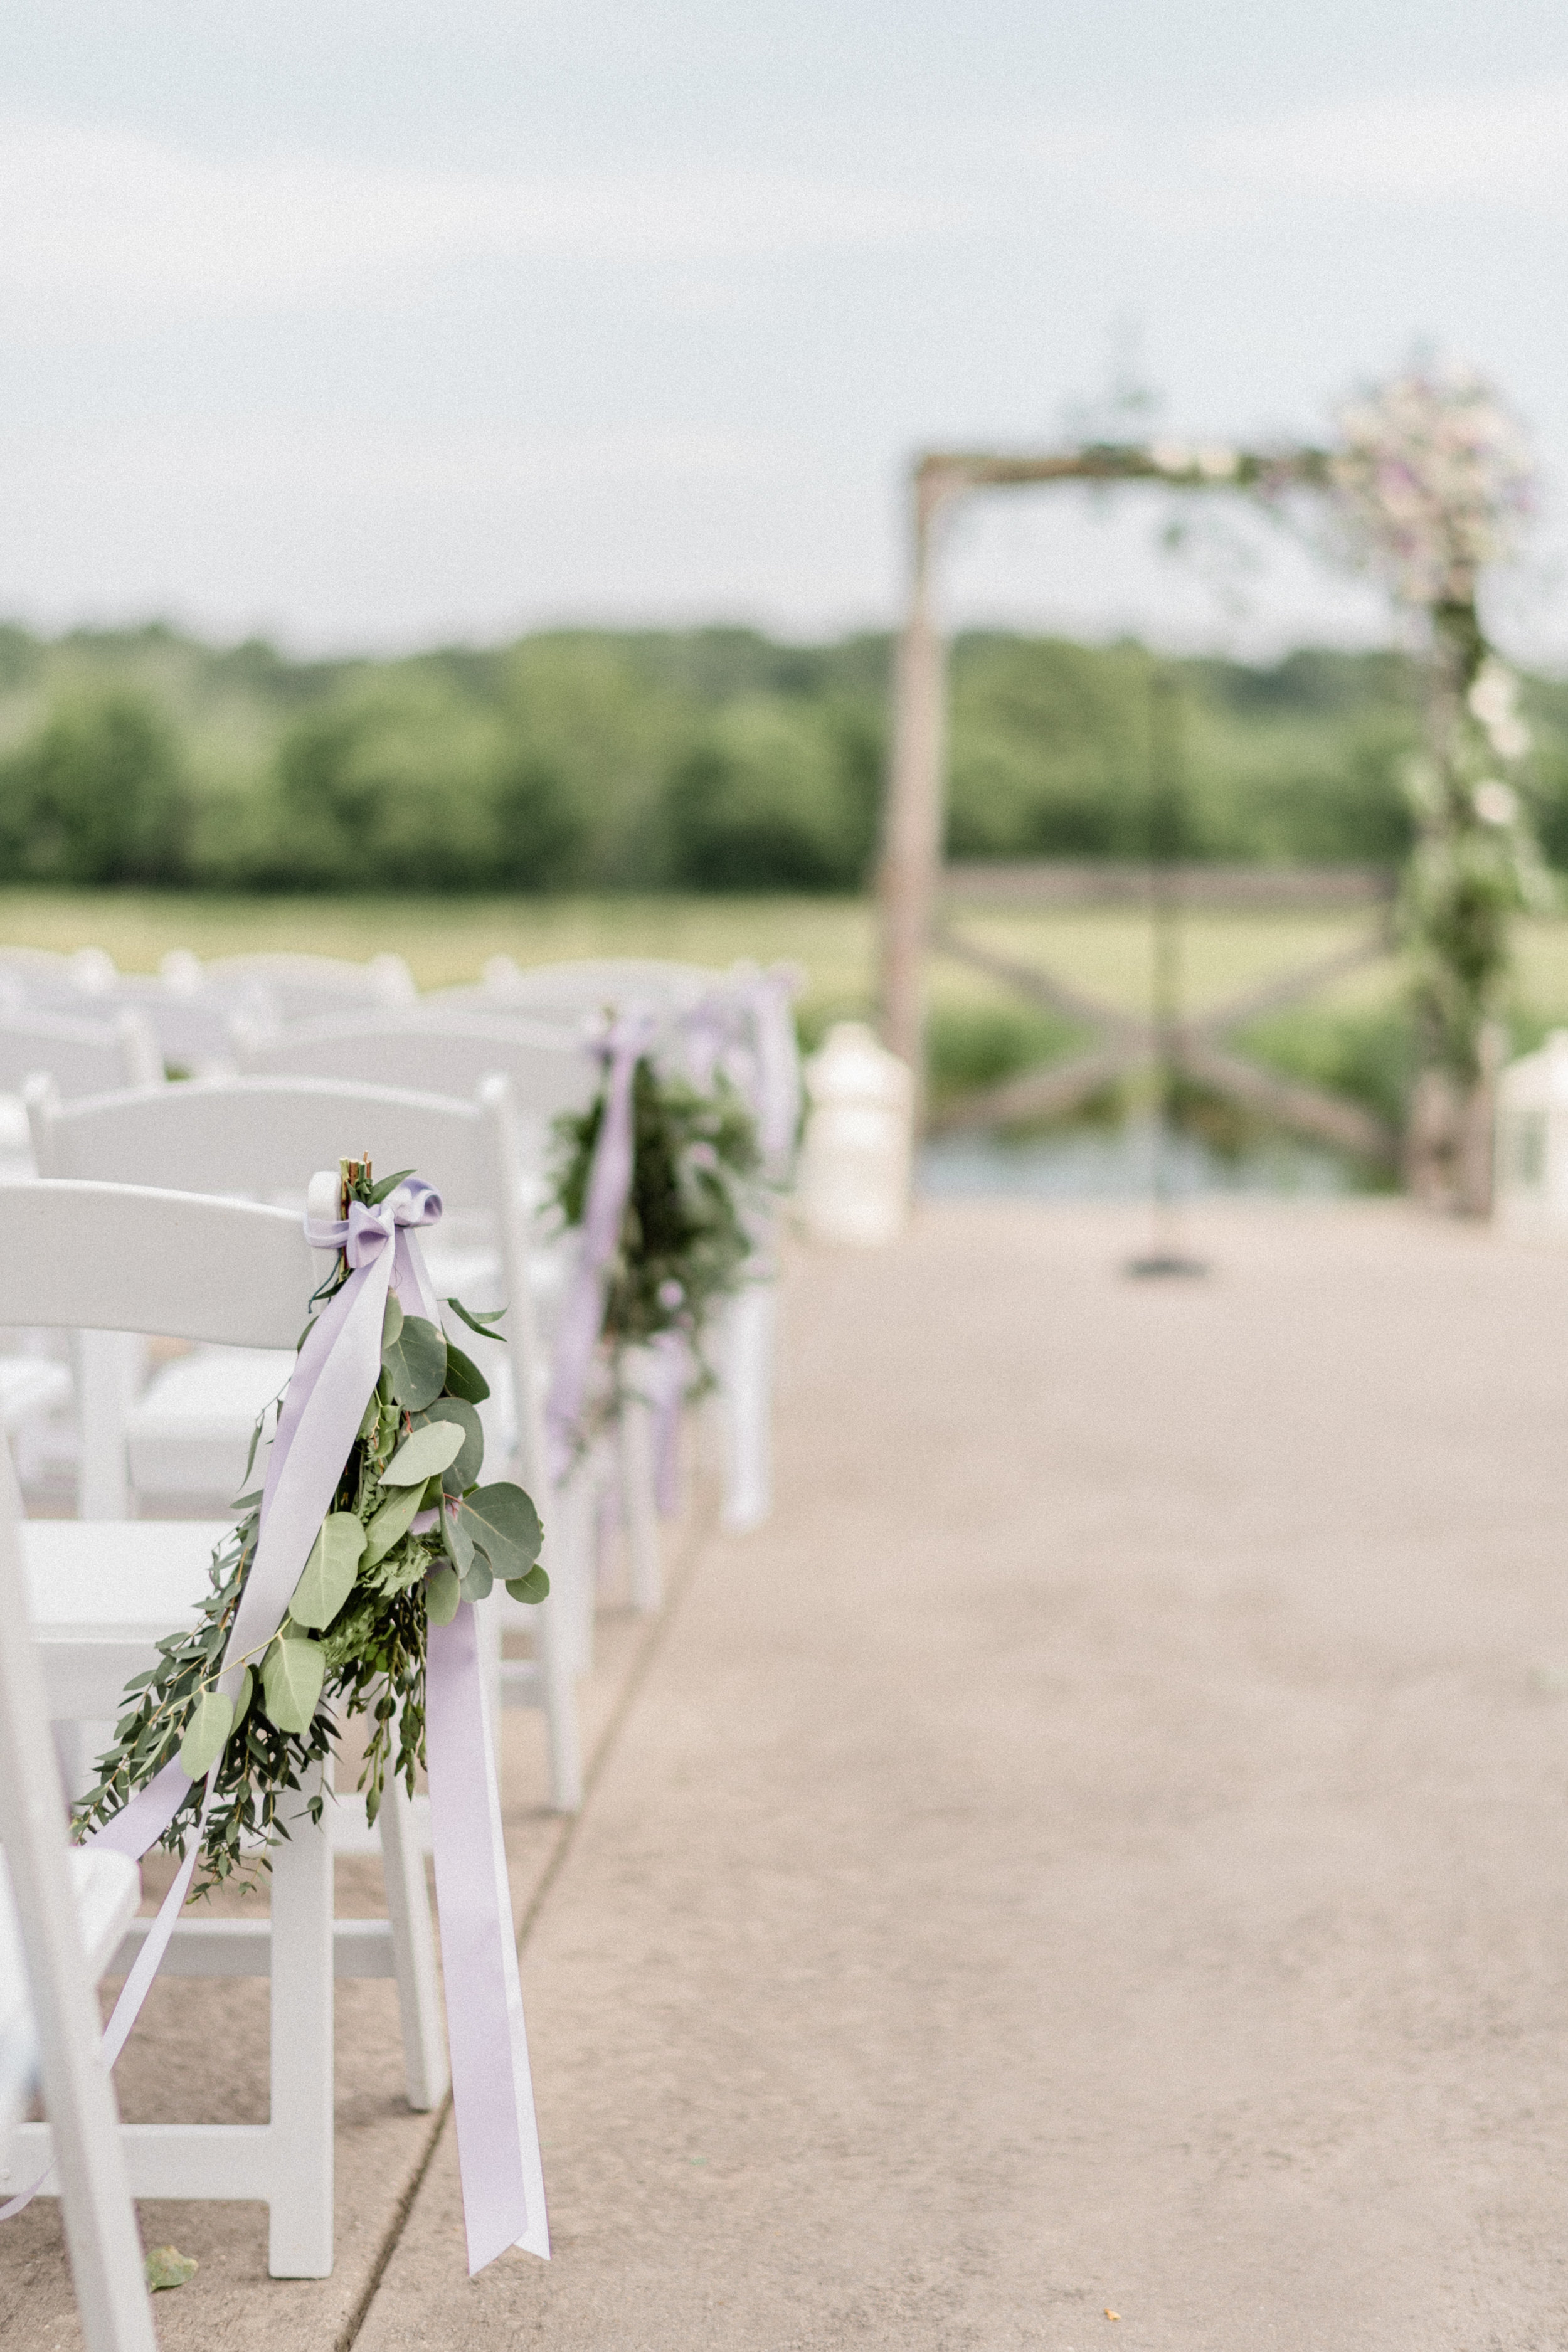 A serene setting… - This venue is so peaceful! For their ceremony, Jackie & Bryce read their own vows and listened as a friend recited a poem she wrote just for them. It was truly heartwarming.